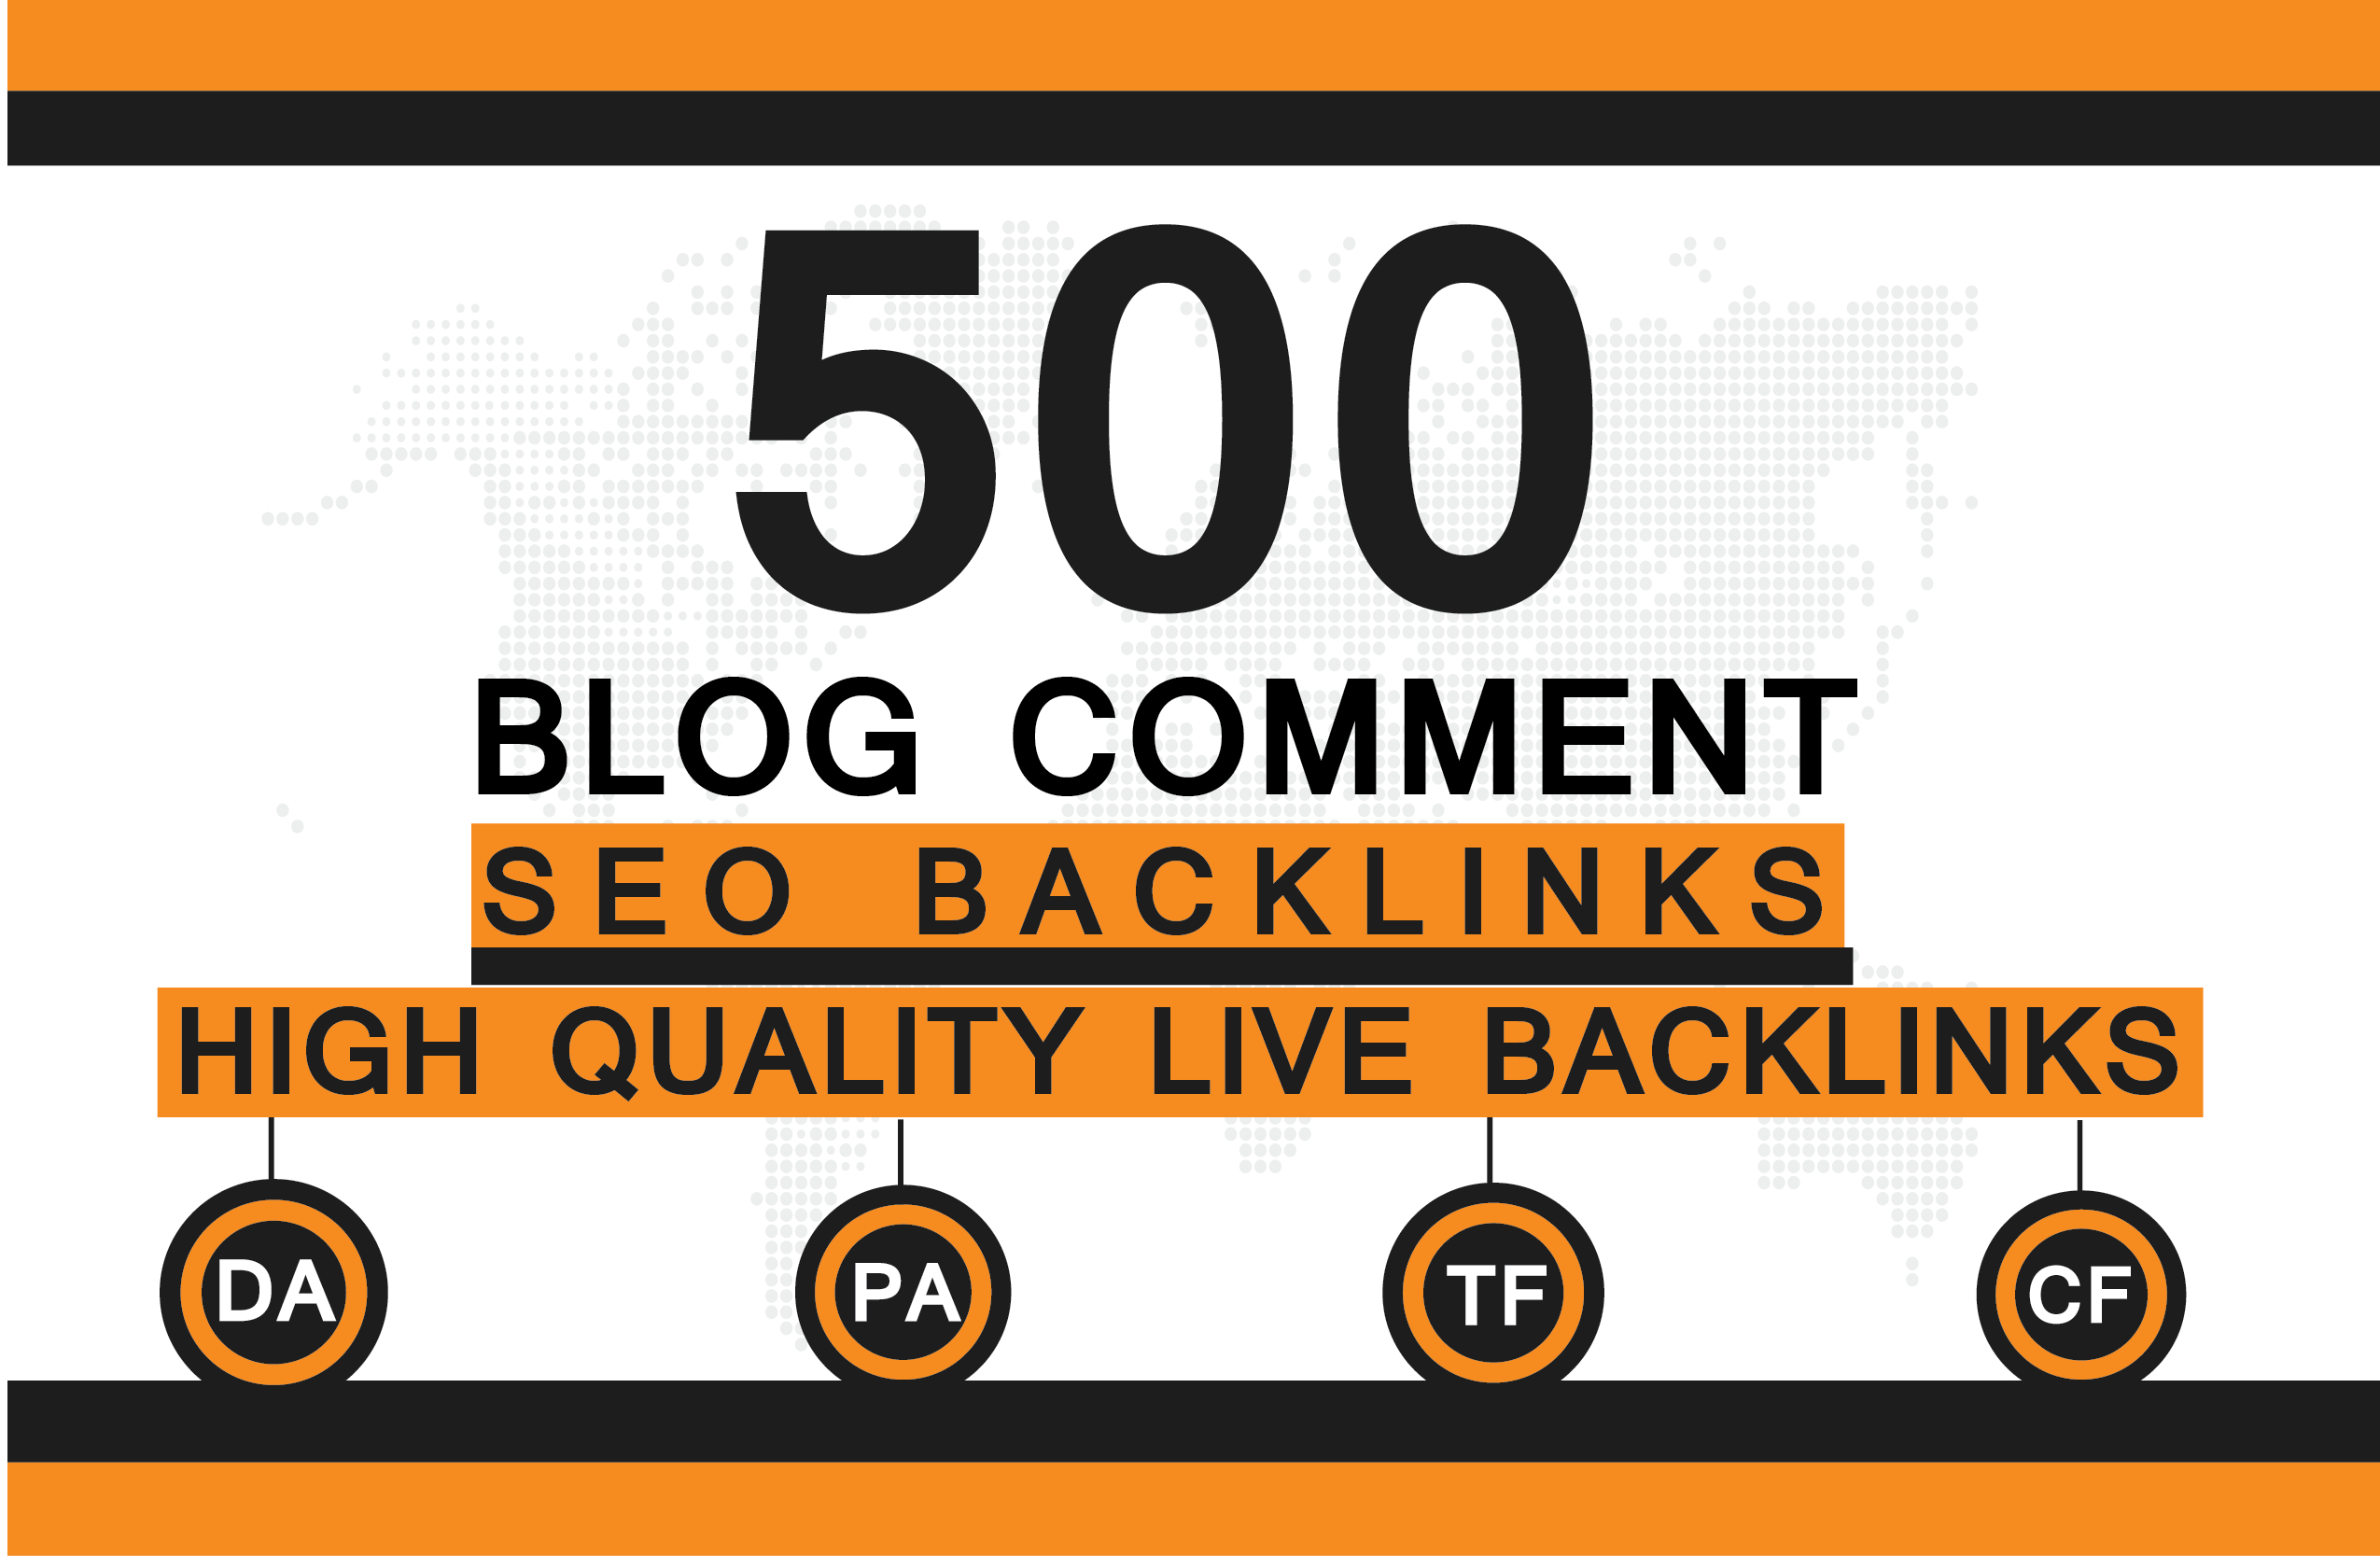 i Will Creat 500 Blog Comments With High DA and PA Low.